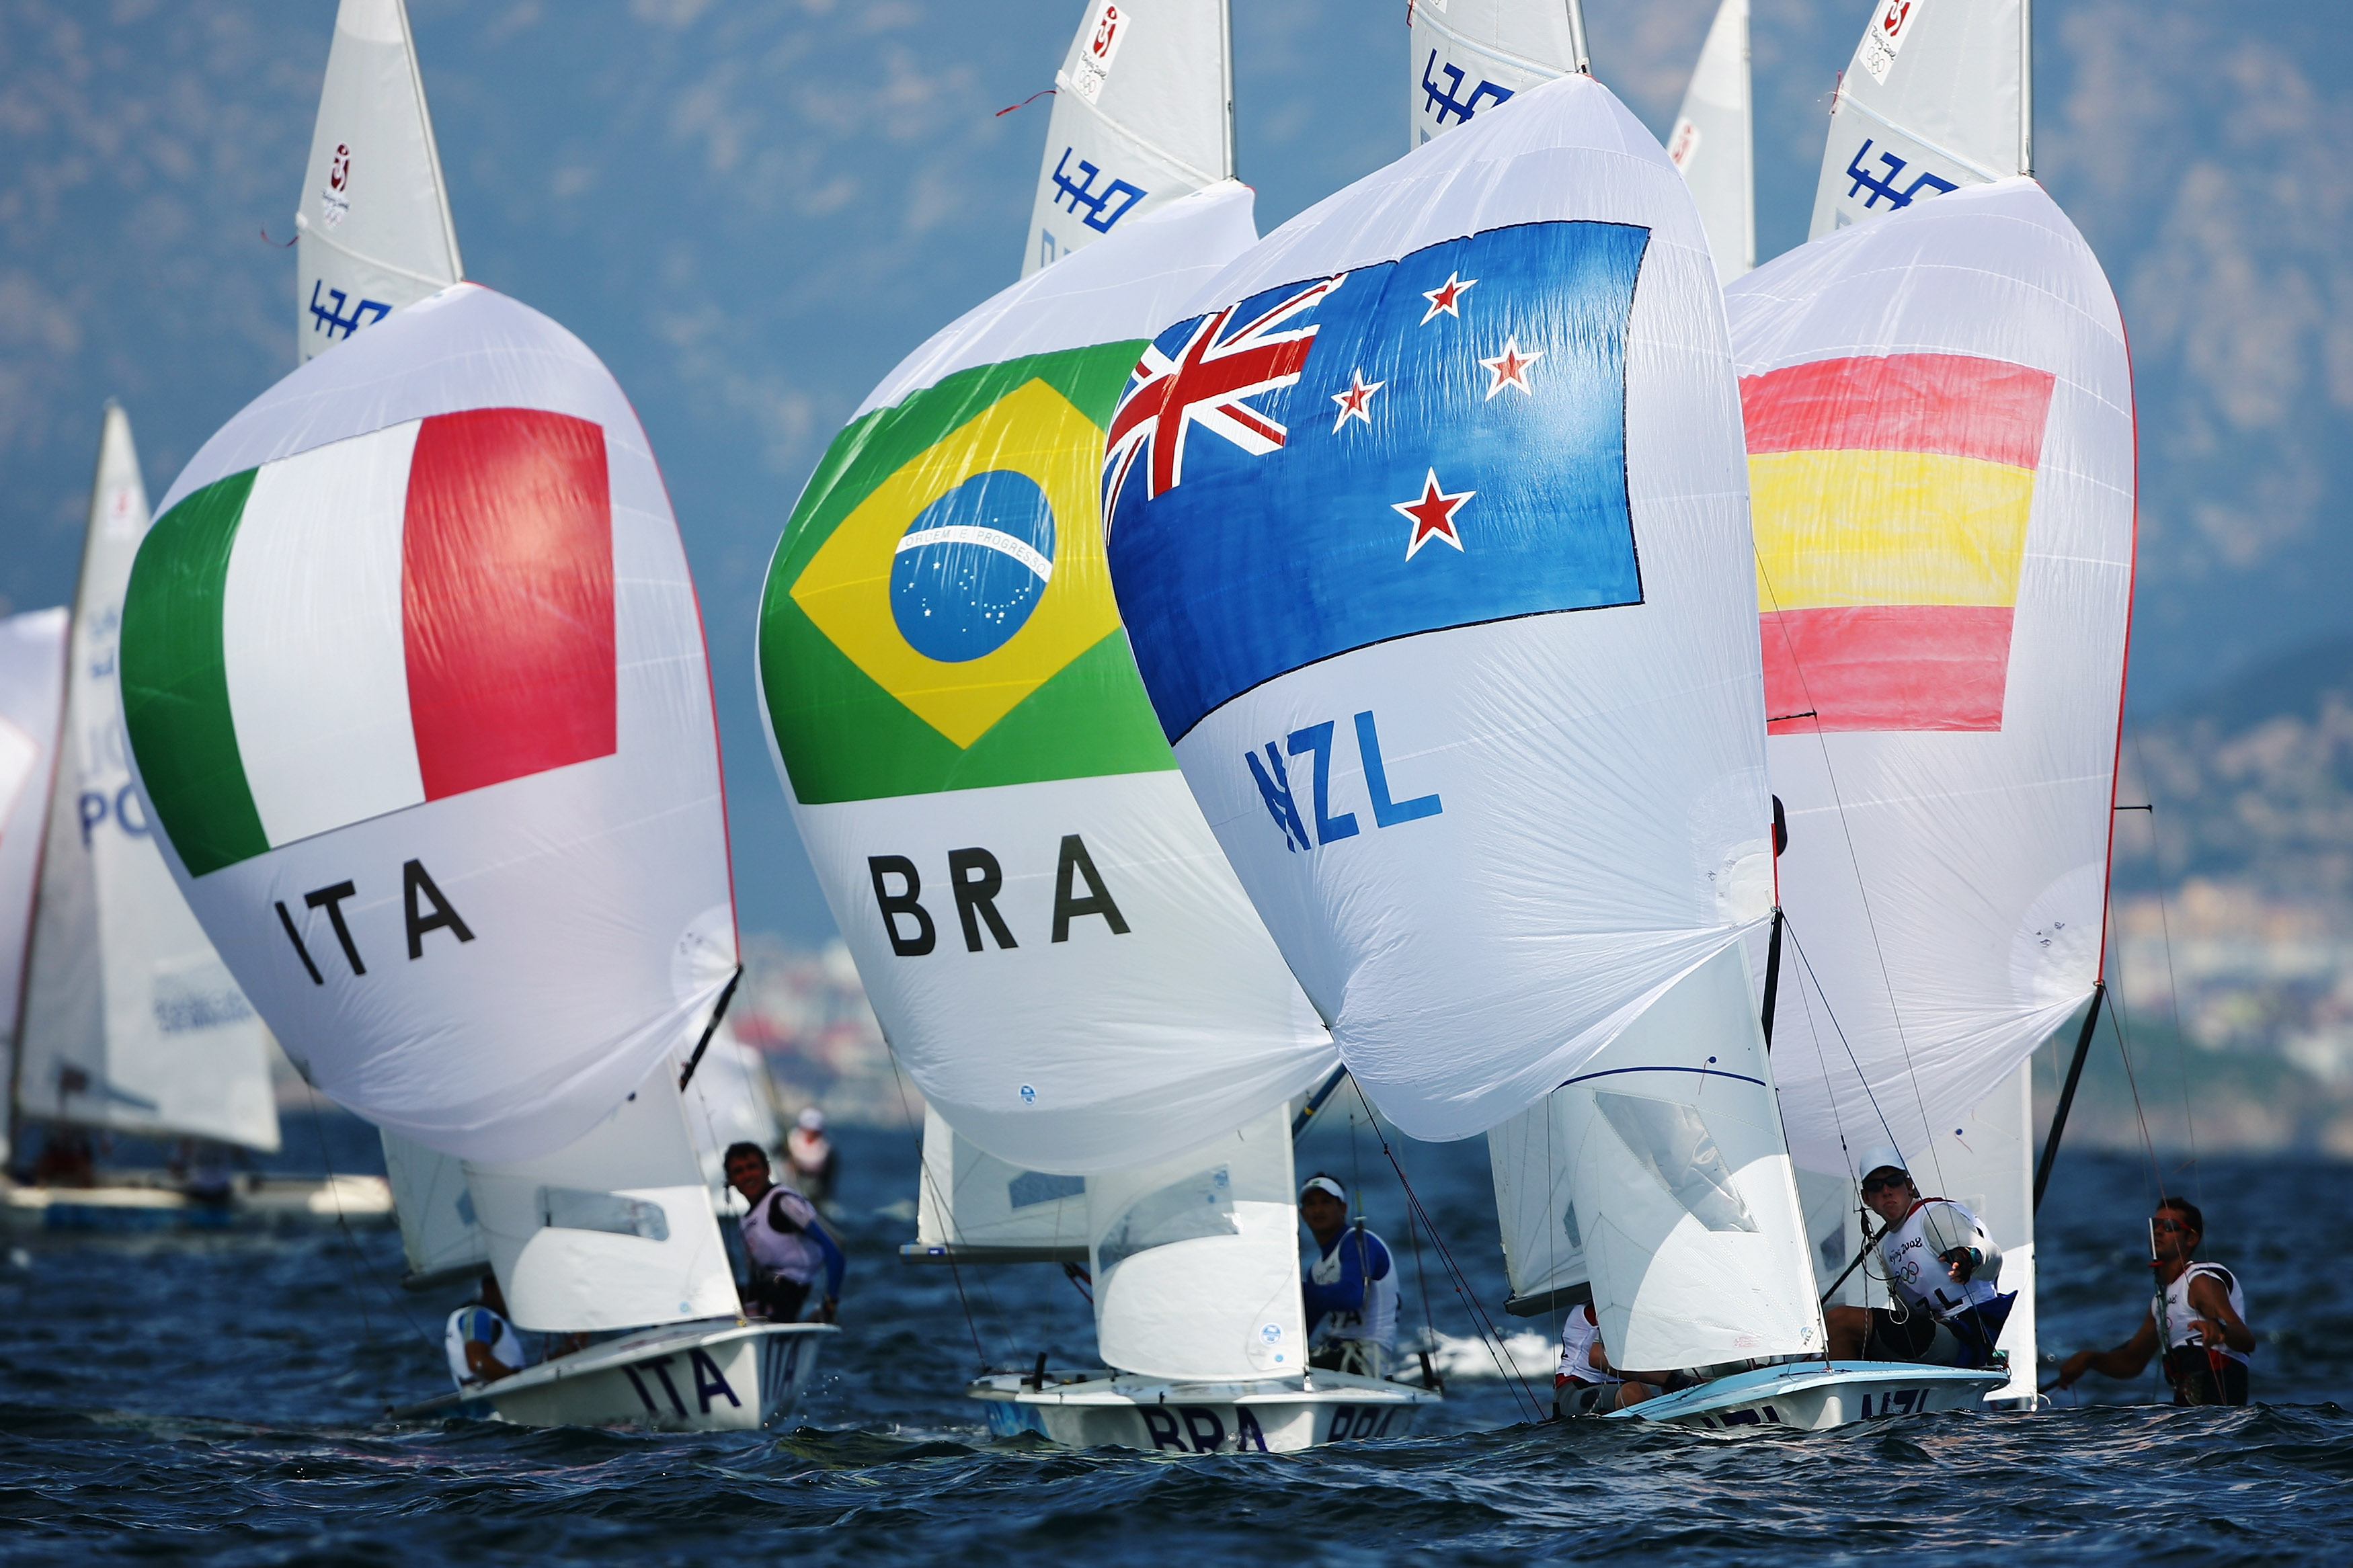 QINGDAO, CHINA - AUGUST 11: (L-R) Gabrio Zandona' and Andrea Trani of Italy, Fabio Silva and Samuel Albrecht of Brazil and Carl Evans and Peter Burling of New Zealand compete in the 470 Men's class race held at the Qingdao Olympic Sailing Center during day 3 of the Beijing 2008 Olympic Games on August 11, 2008 in Qingdao, China. (Photo by Clive Mason/Getty Images)